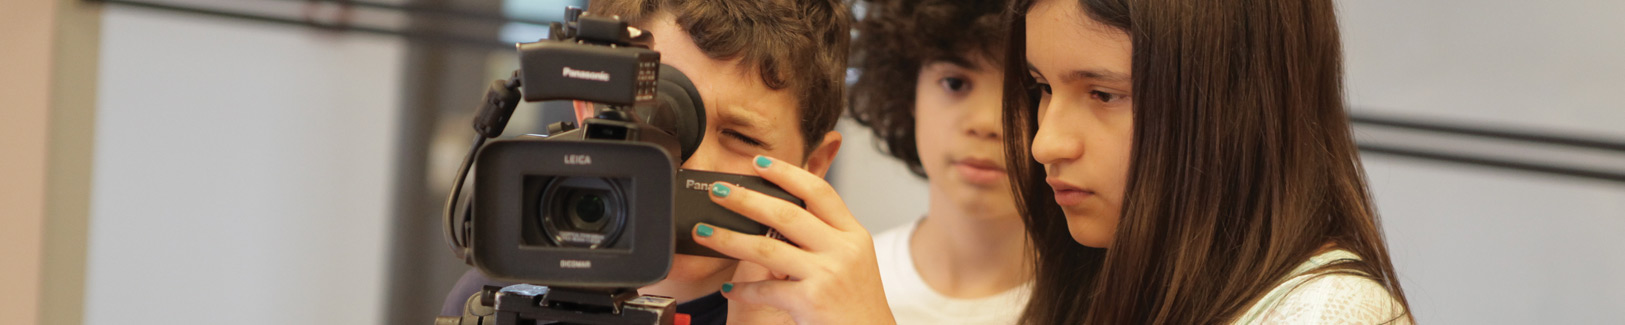 A NYFA filmmaking camp student holds the camera while her classmate peers through the viewer.